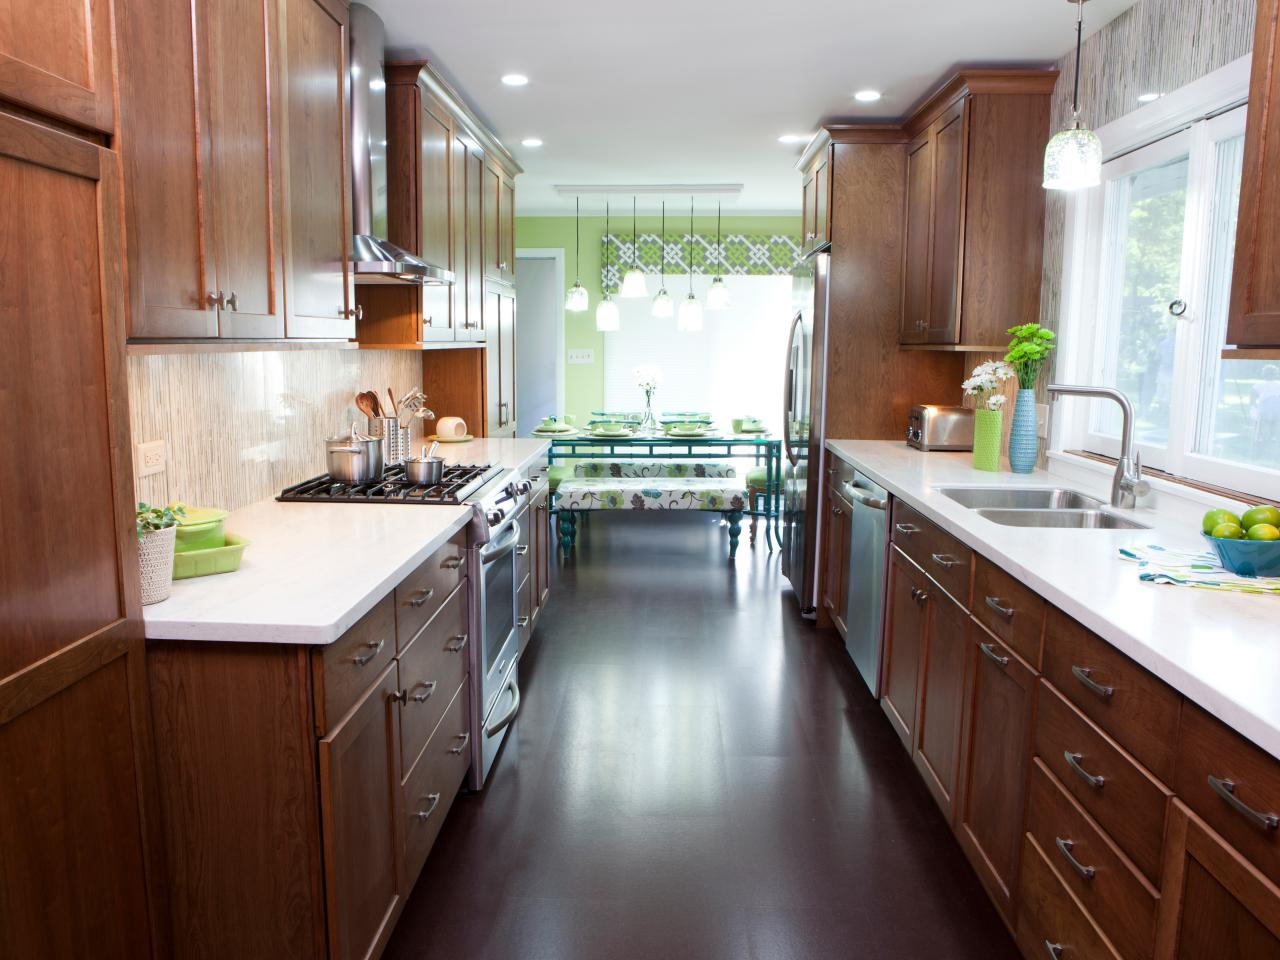 Galley kitchen designs hgtv - Kitchen styles and designs ...